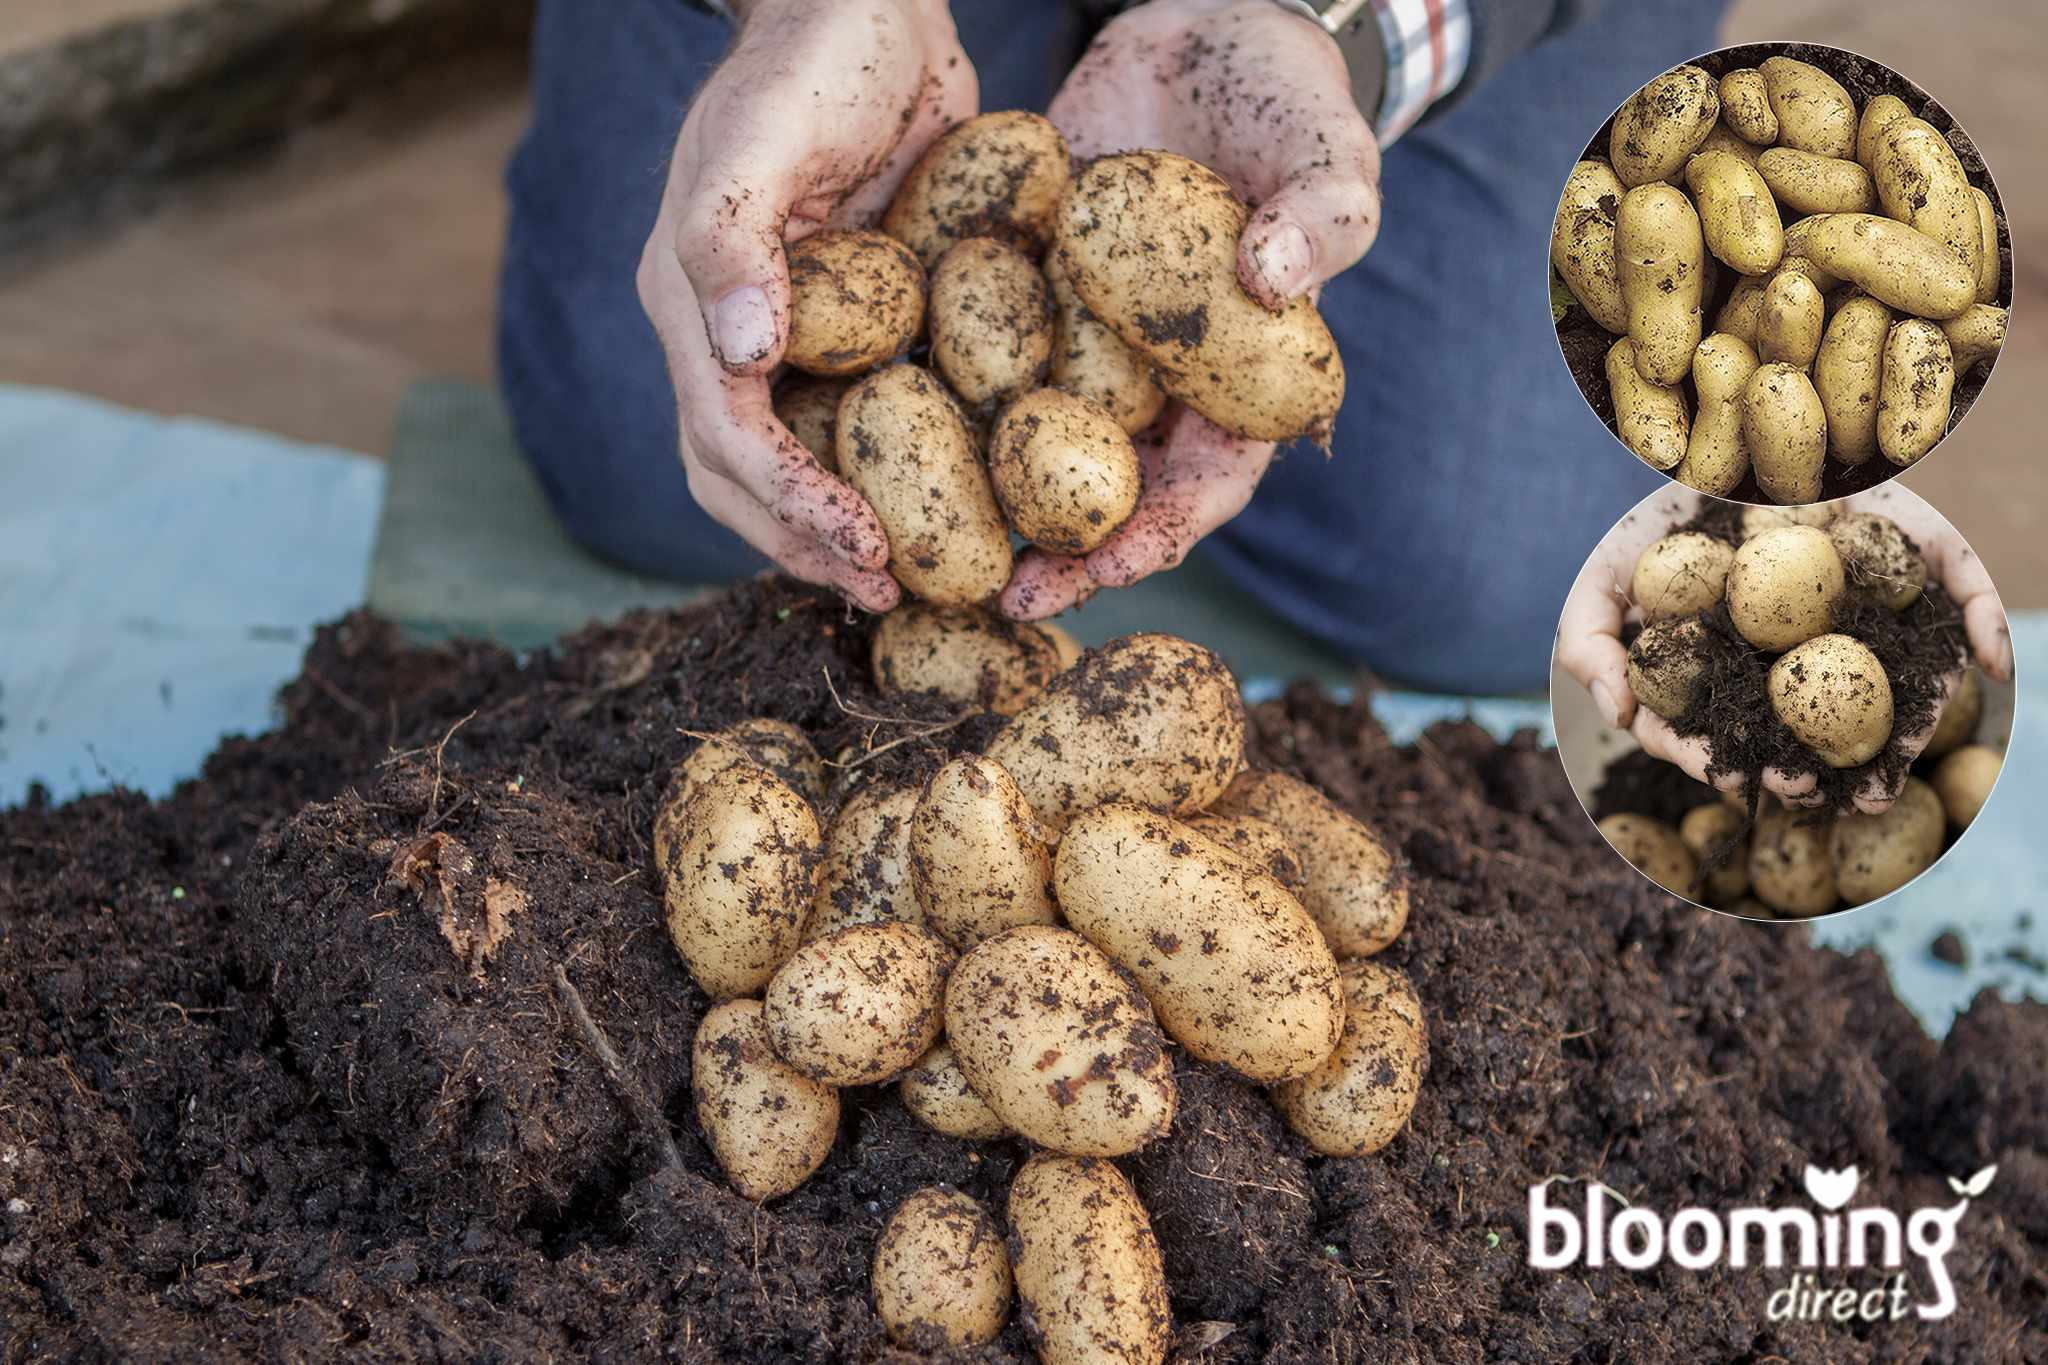 Save over 55% on second cropping potato patio growing kit from Blooming Direct